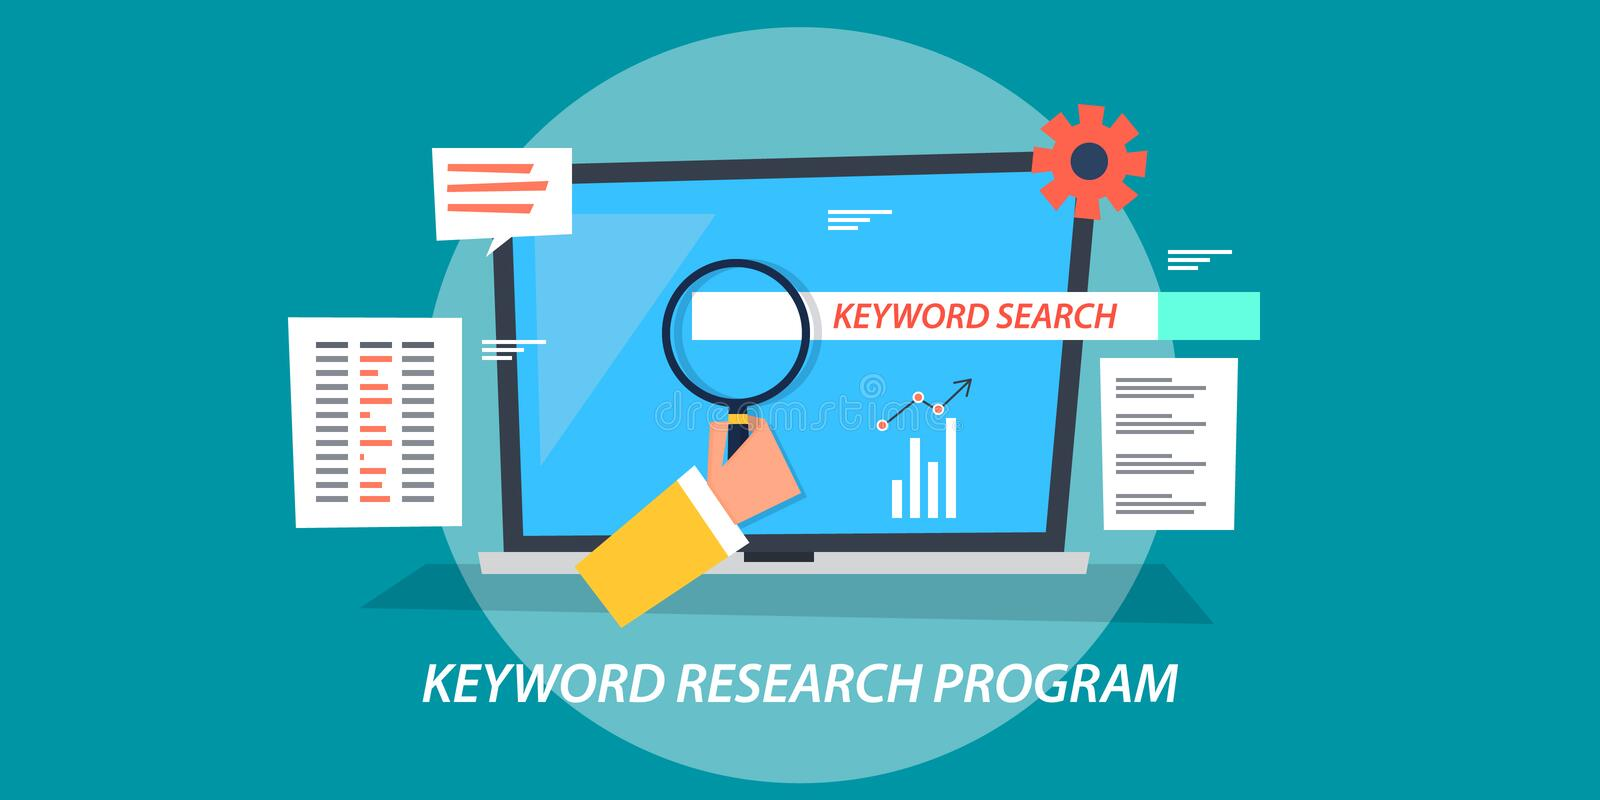 Flat design concept of keyword research program, search engine optimization. vector illustration